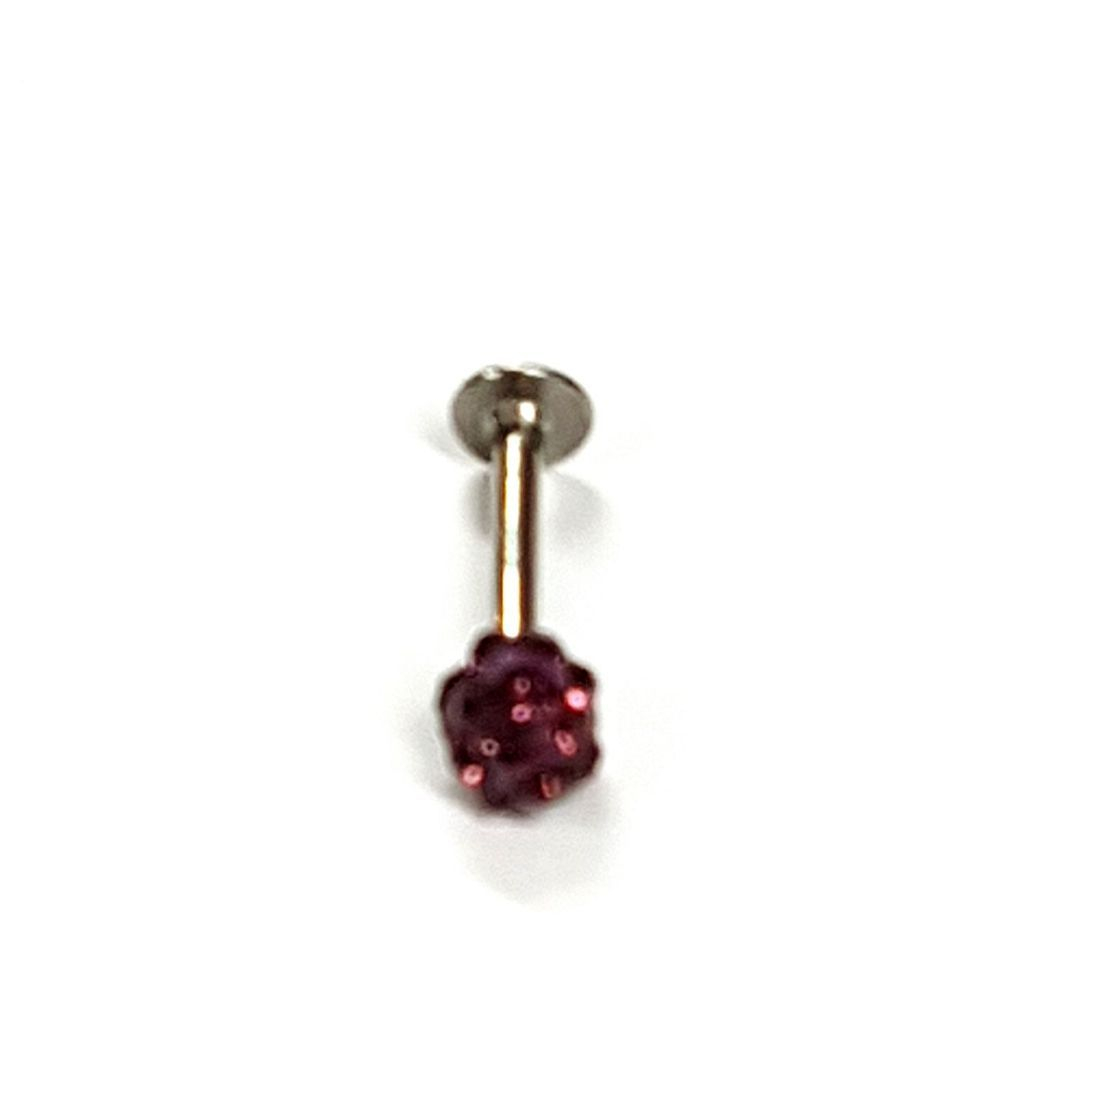 1.2mm x 8mm Amethyst Crystal Flatback Bar    available at Kazbah online and our Leicester City Centre Shop